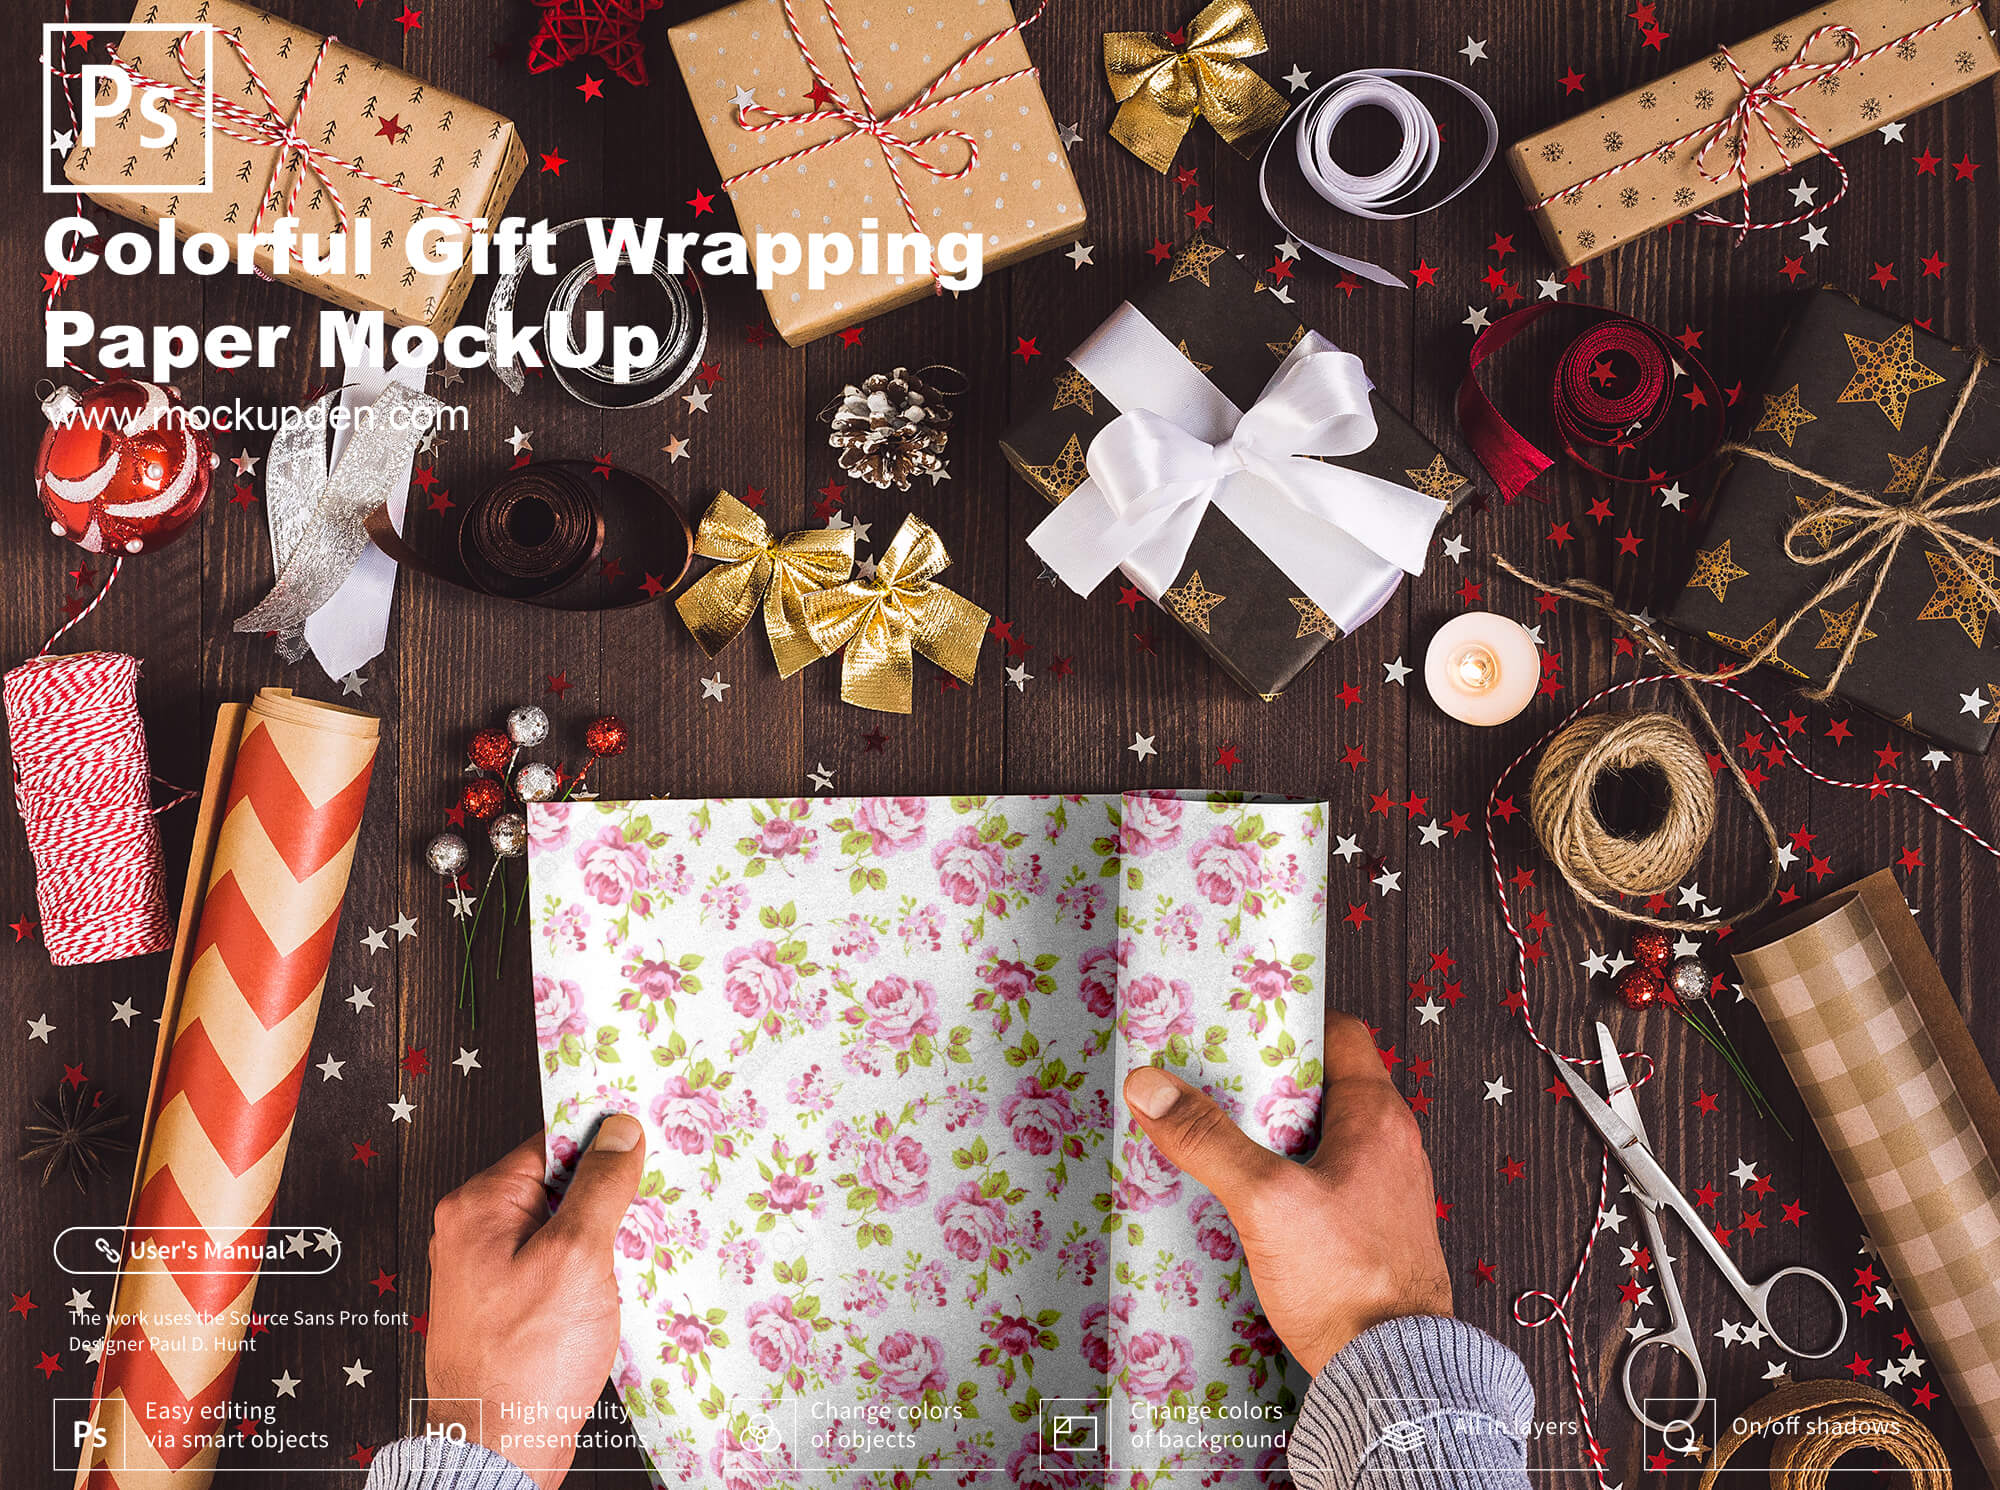 Colorful Gift Wrapping Paper MockUp